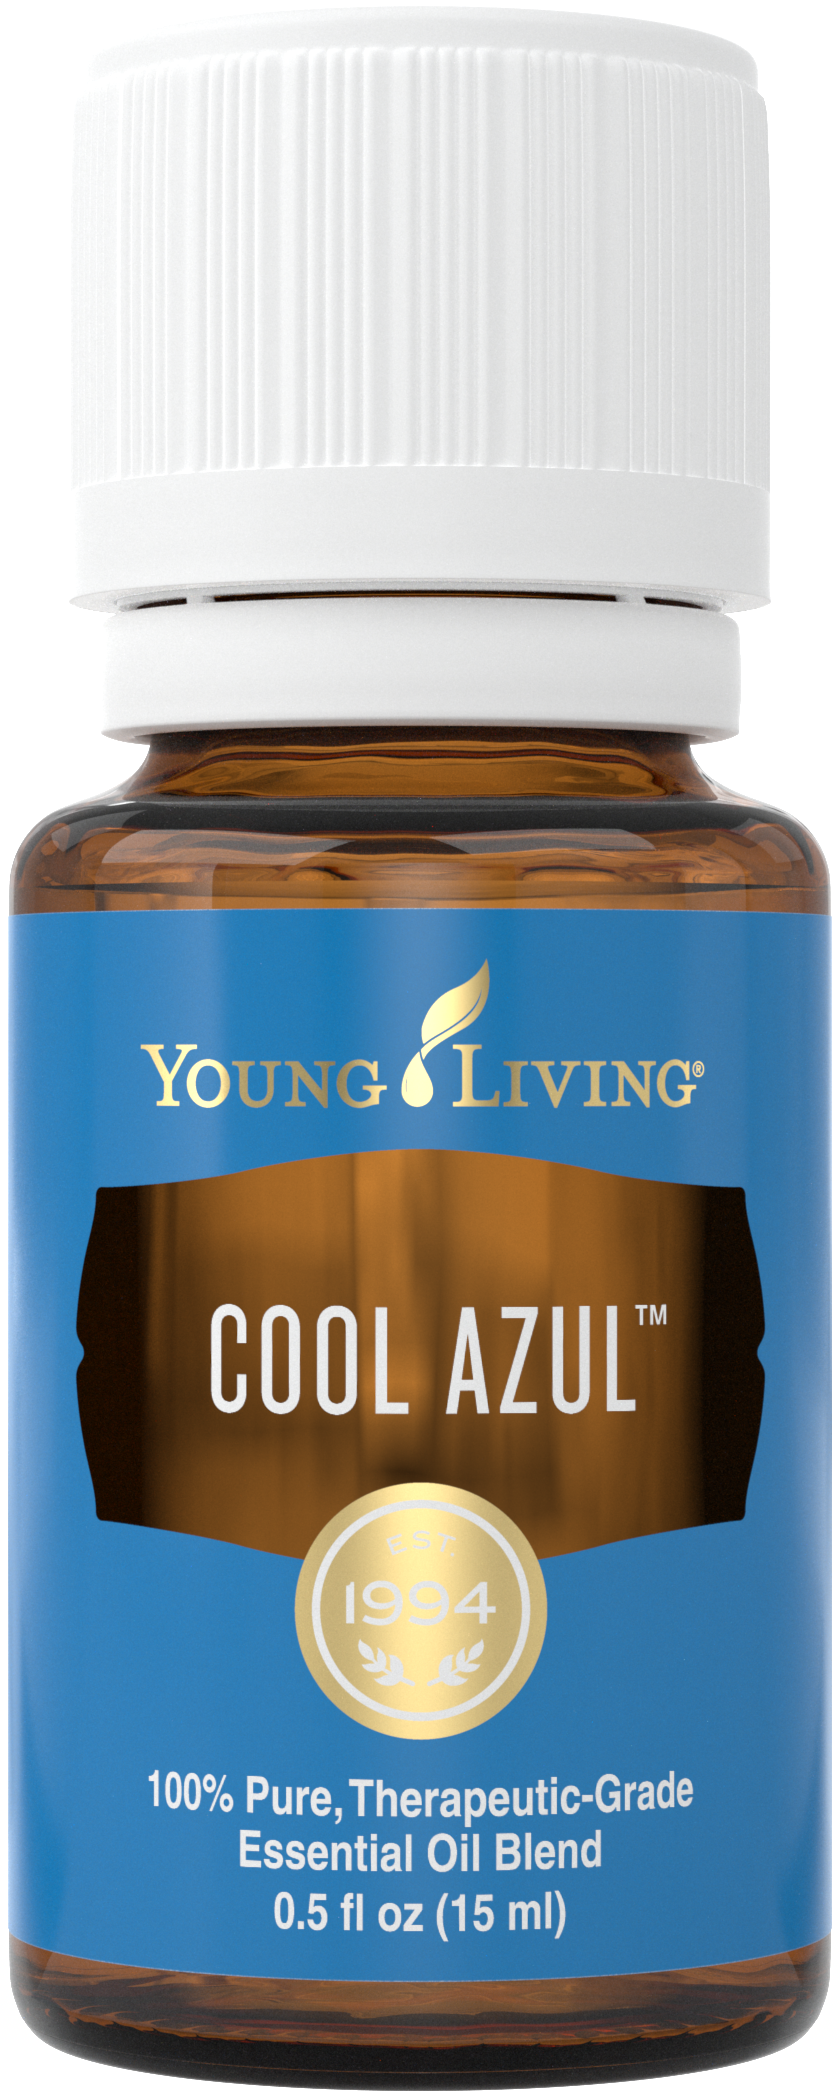 Cool Azul Essential Oil by Young Living